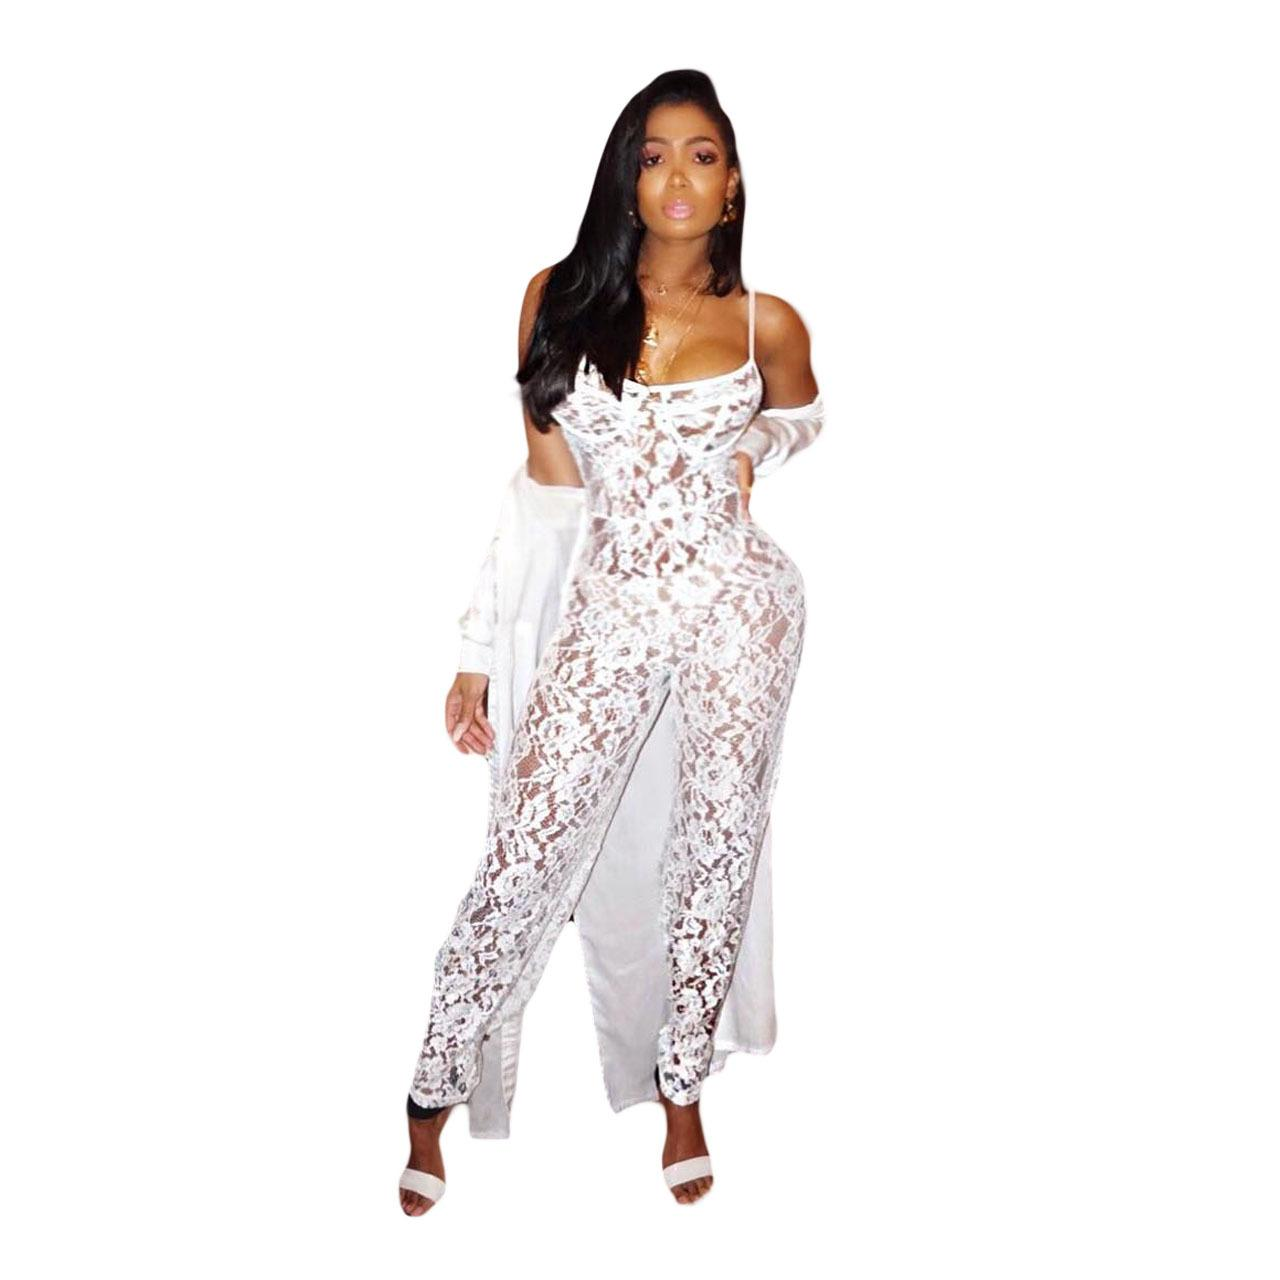 2605dcd1bc Summer White Lace Jumpsuit Women Strap See Through Bodysuit Sexy ...